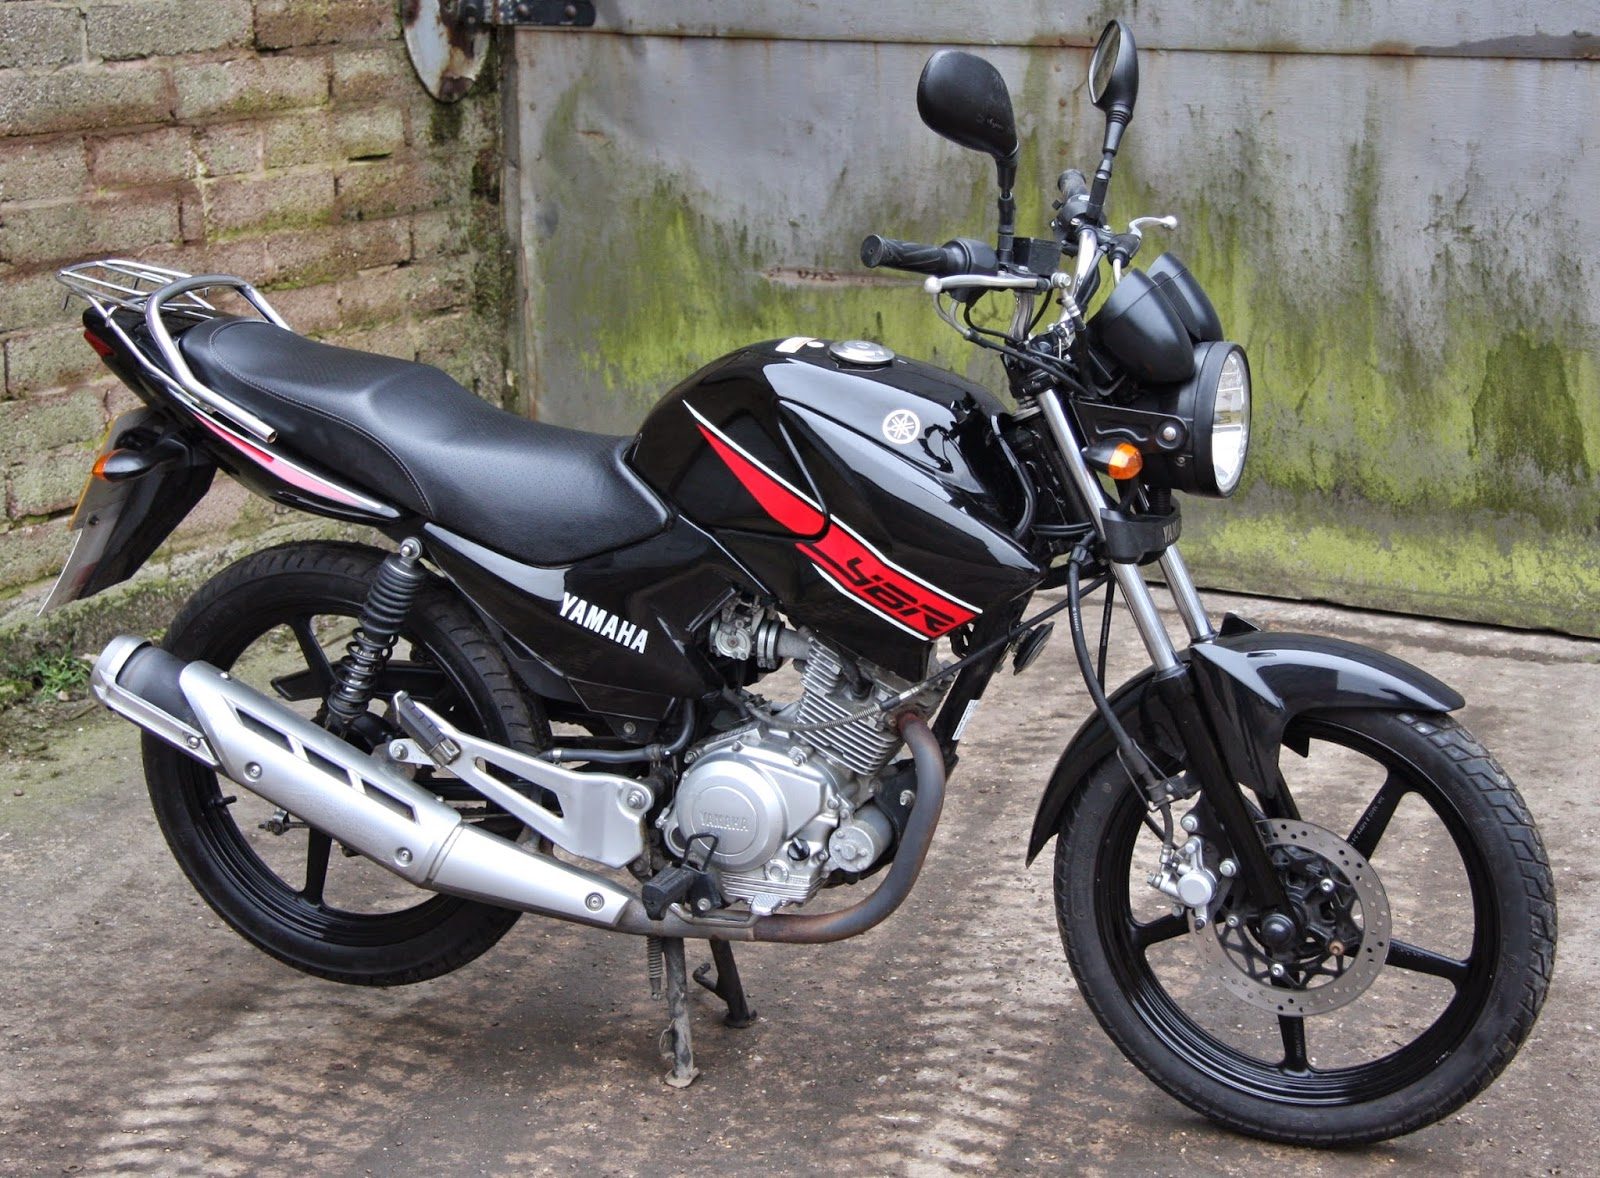 Yamaha Ybr 125 Owner Blog   Yamaha Ybr 125 2013 For Sale Uk